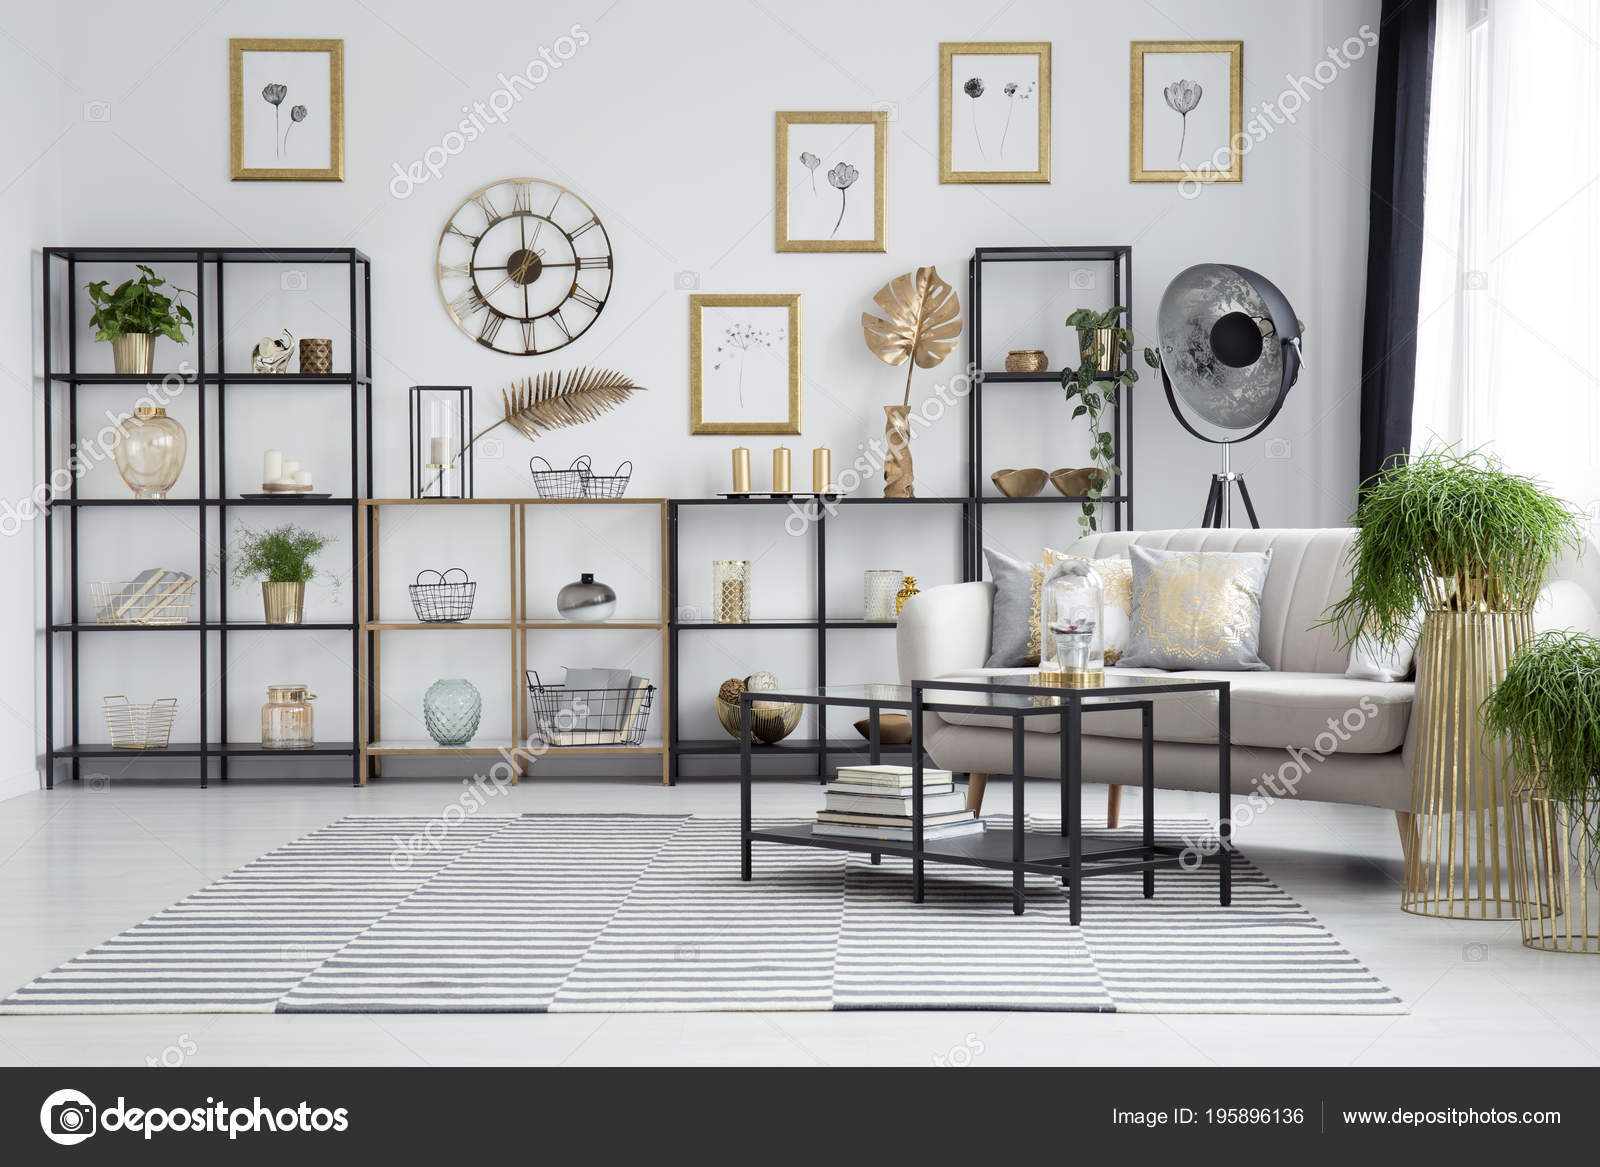 Black Table Next Couch Plants Living Room Interior Gold Clock ...